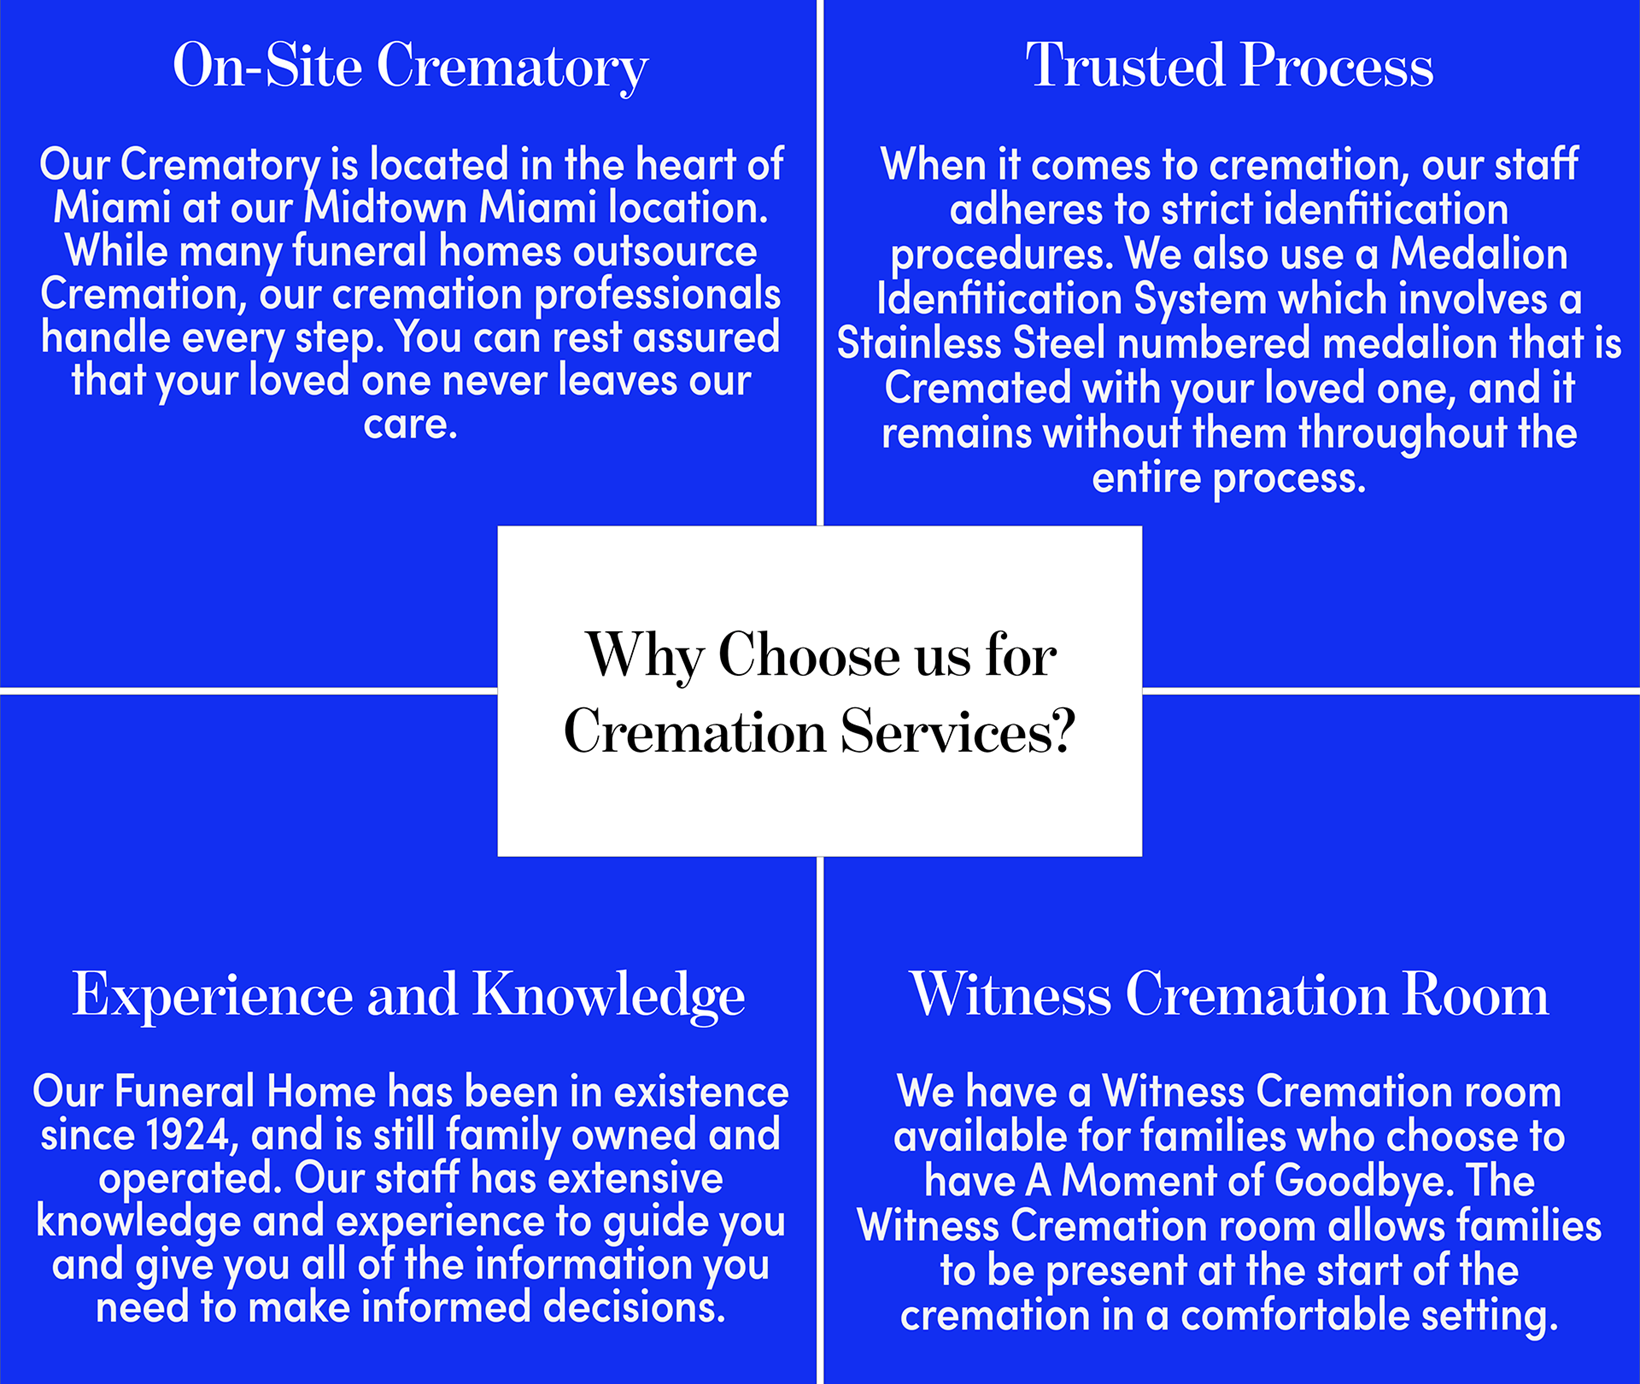 Why choose us for Cremation Services in Miami, FL